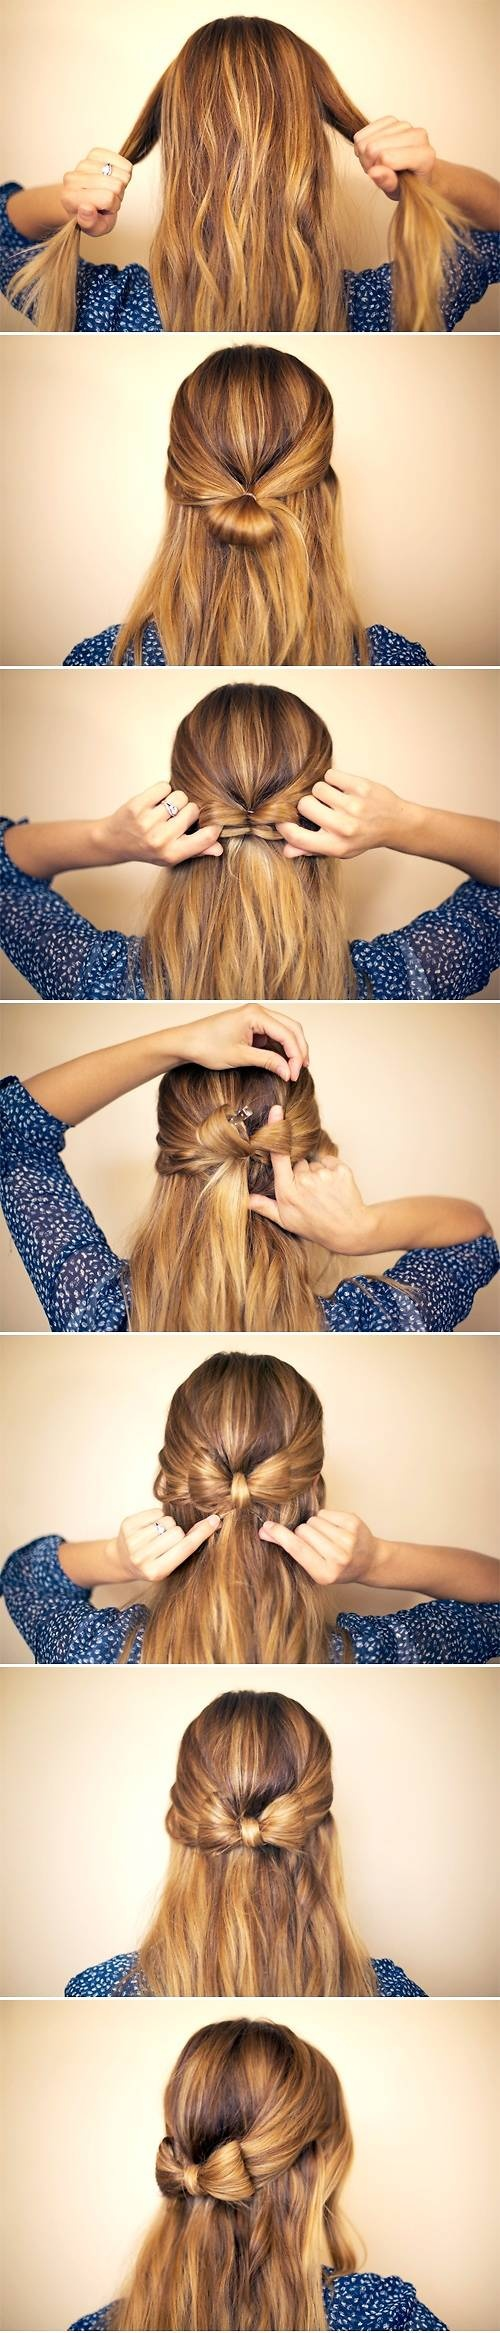 Learn how to make a simple and cute hårrosett - Modette / Beauty